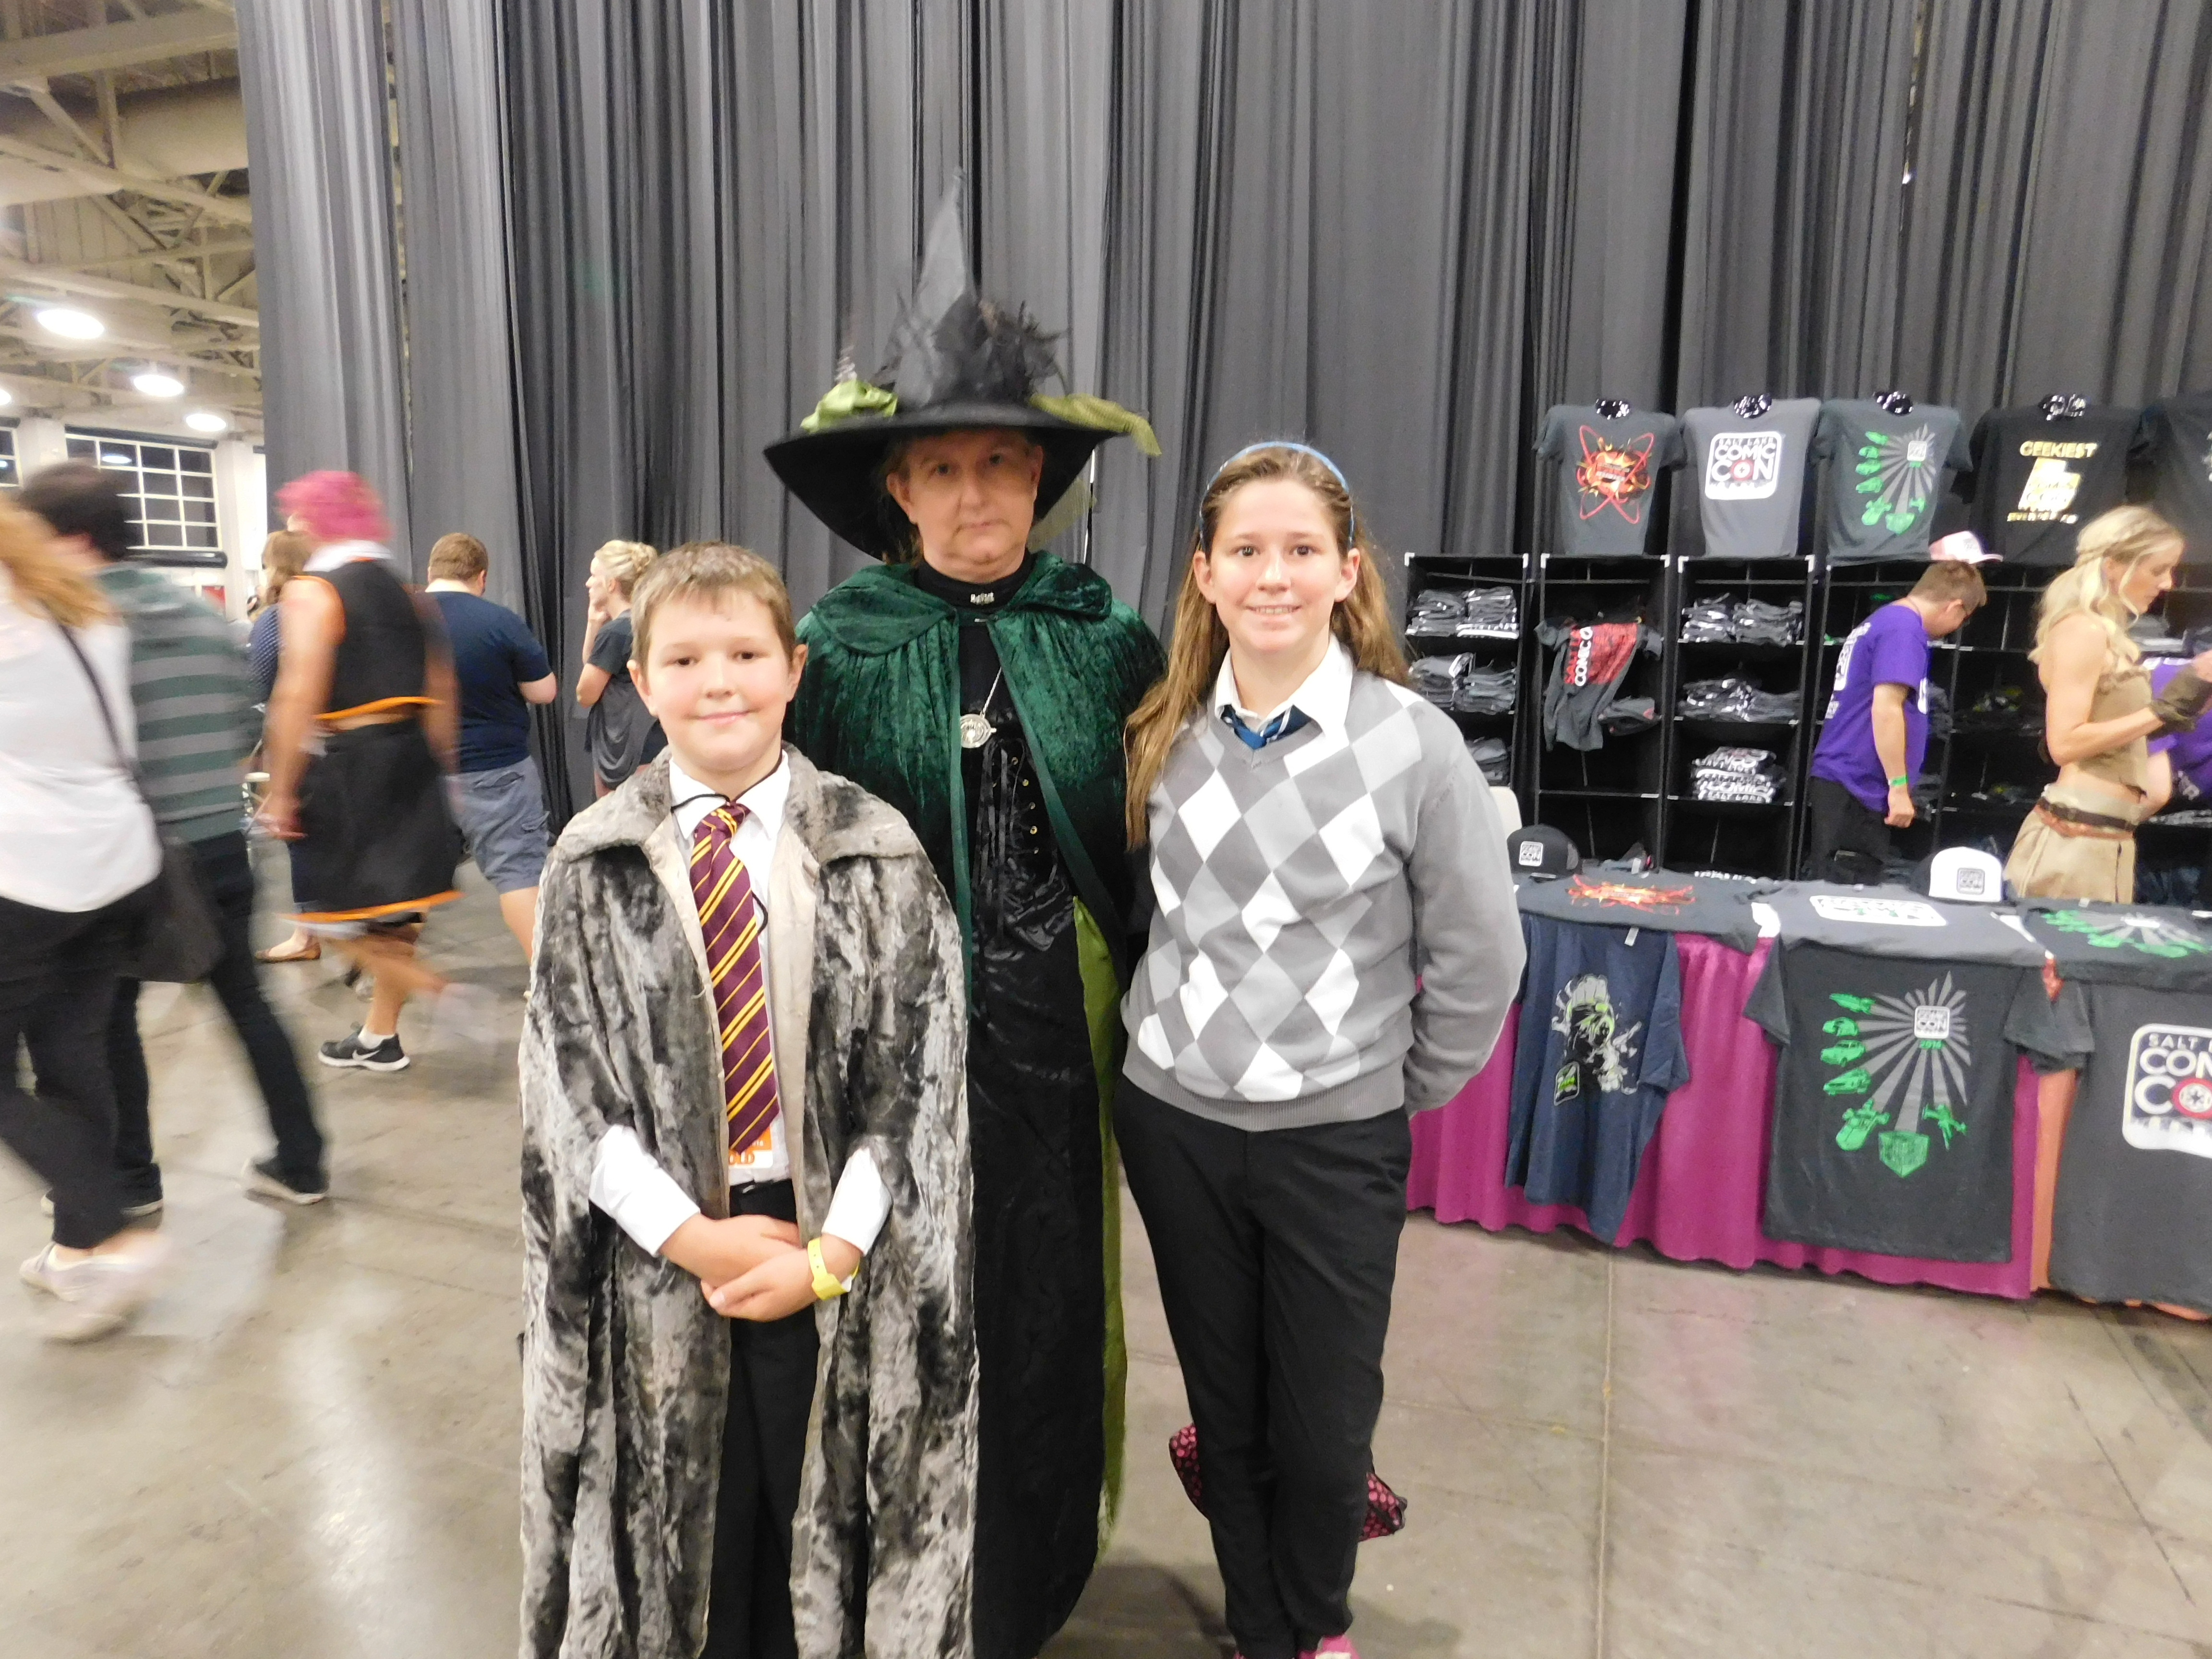 SLCCd3.007 - Prof. McGonagall escorting some new students.